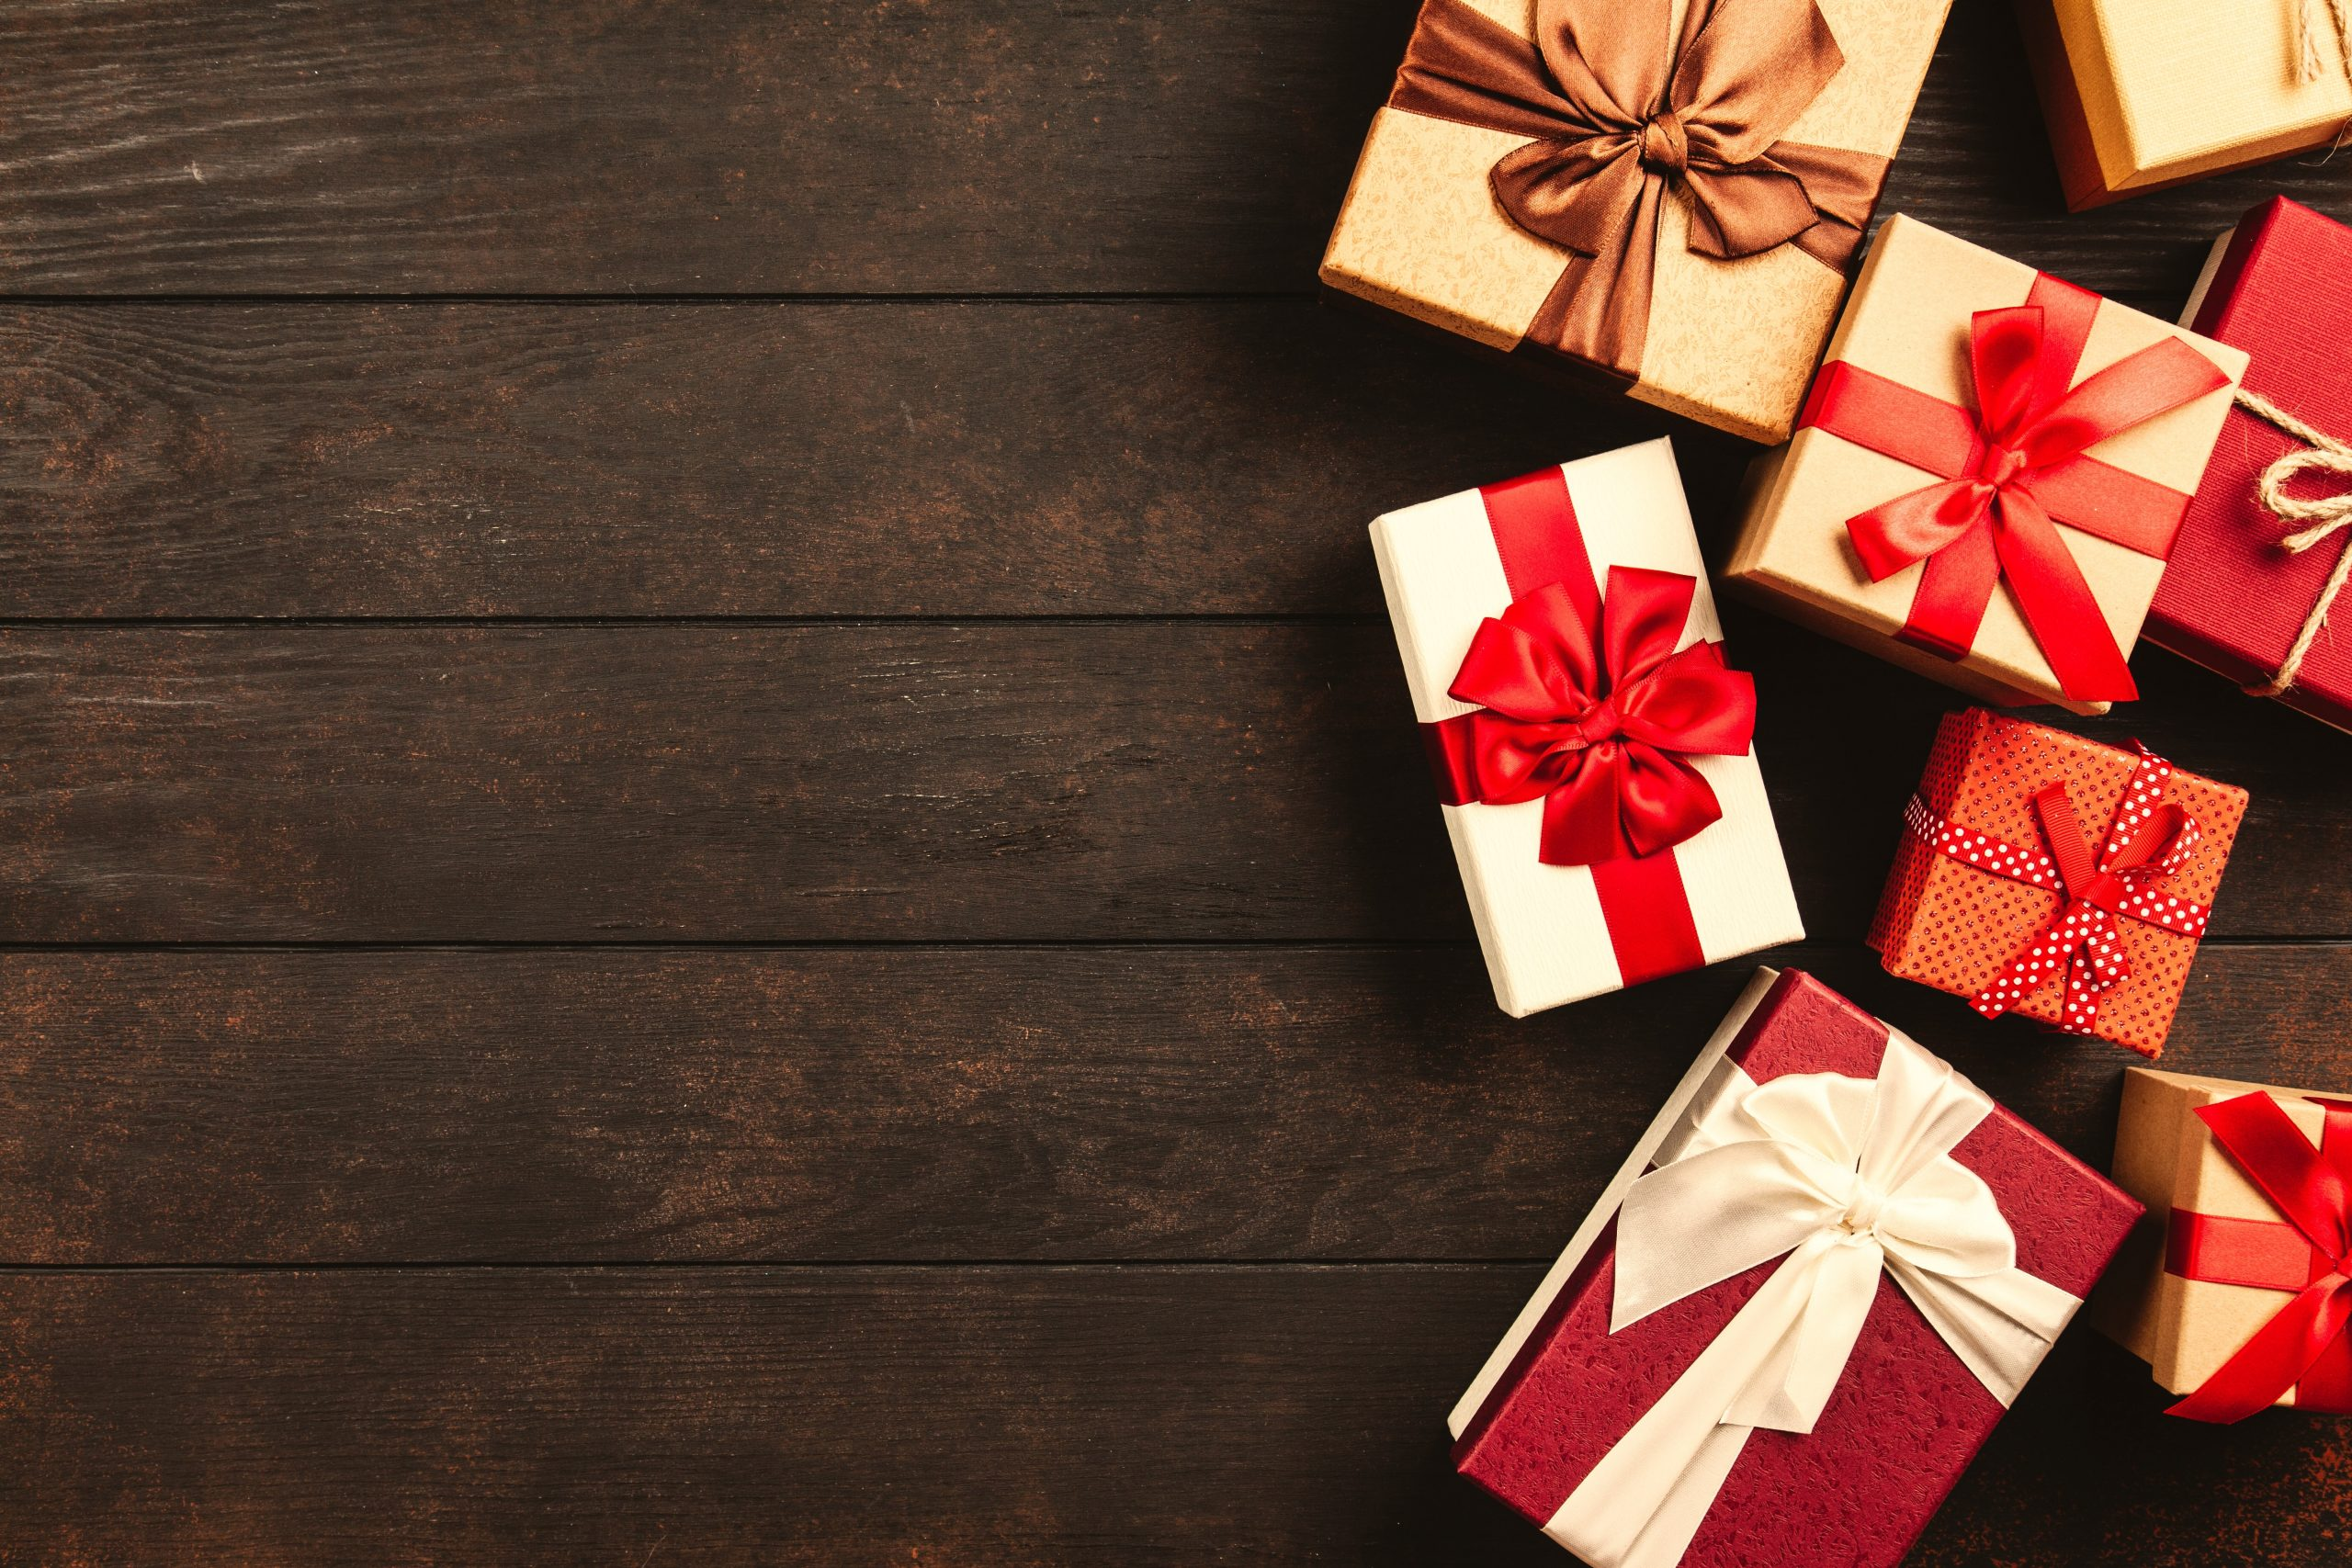 Best Places to Find Last-Minute Gifts in Collingwood